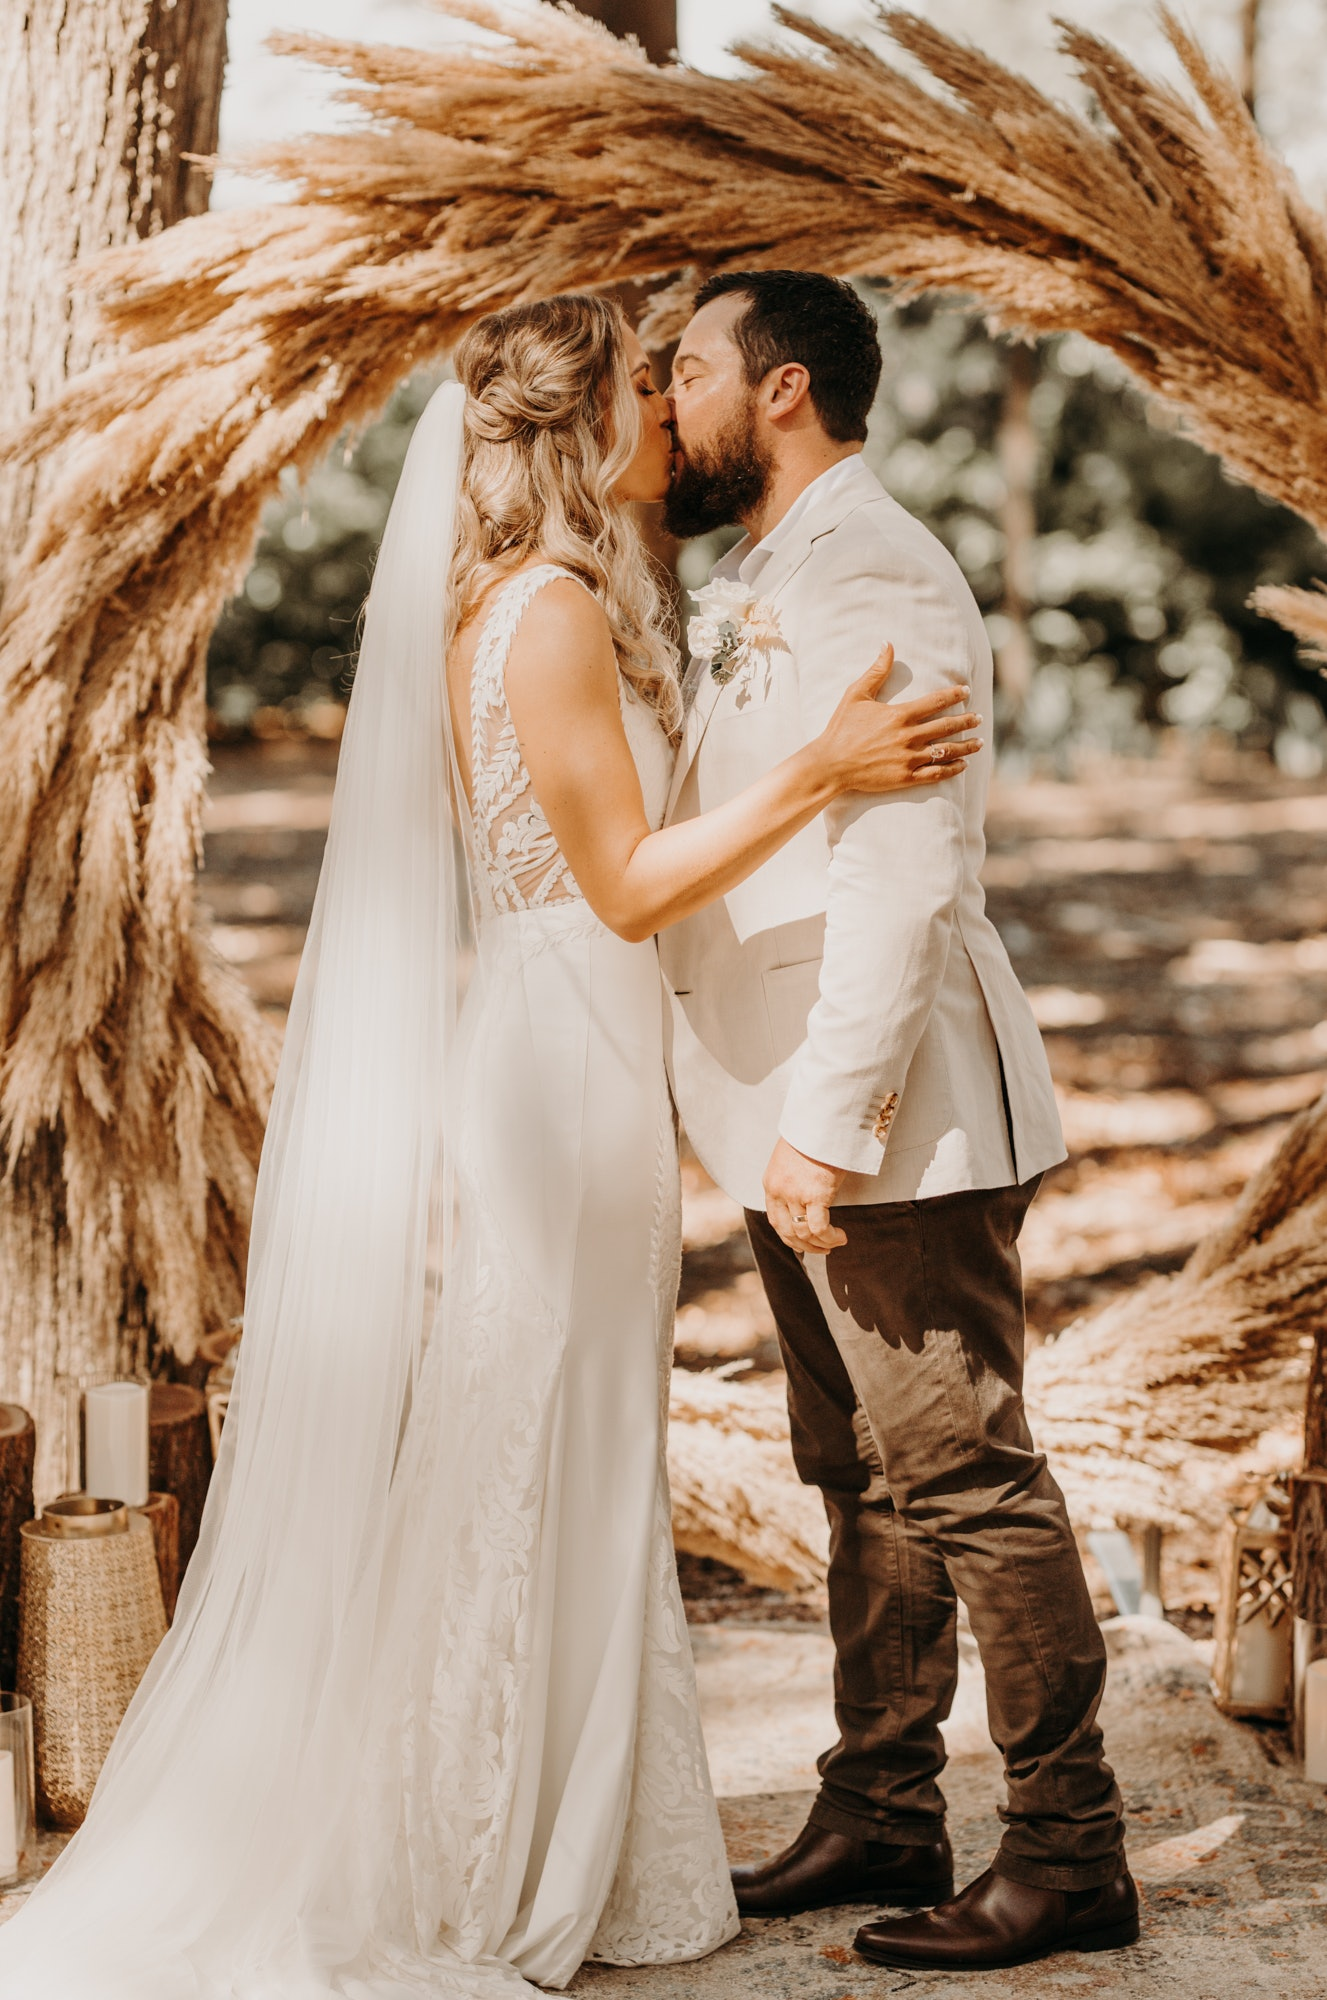 Bride and groom standing at altar kissing